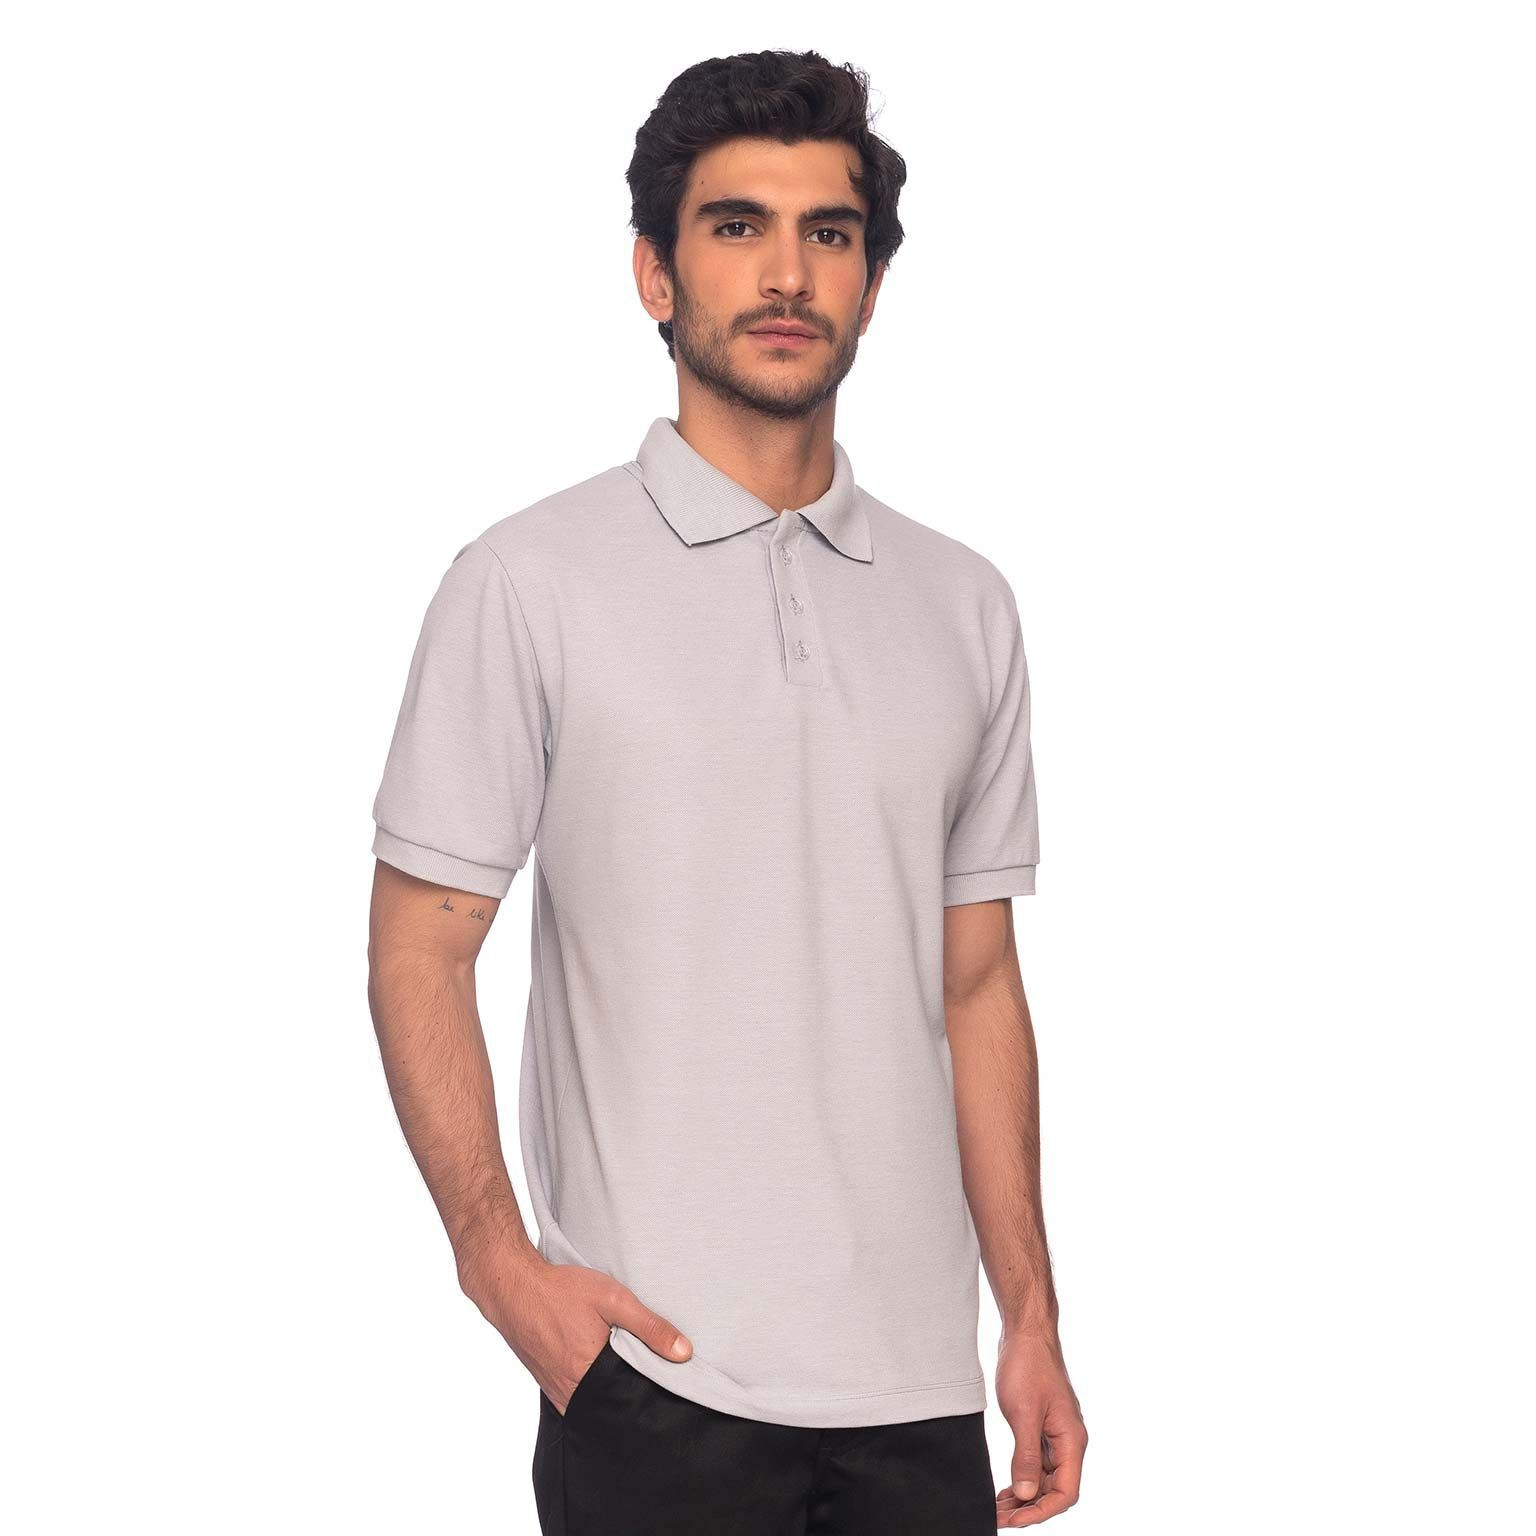 Kit Camisas de Uniforme Masculino Polo Master Collection 3 Peças